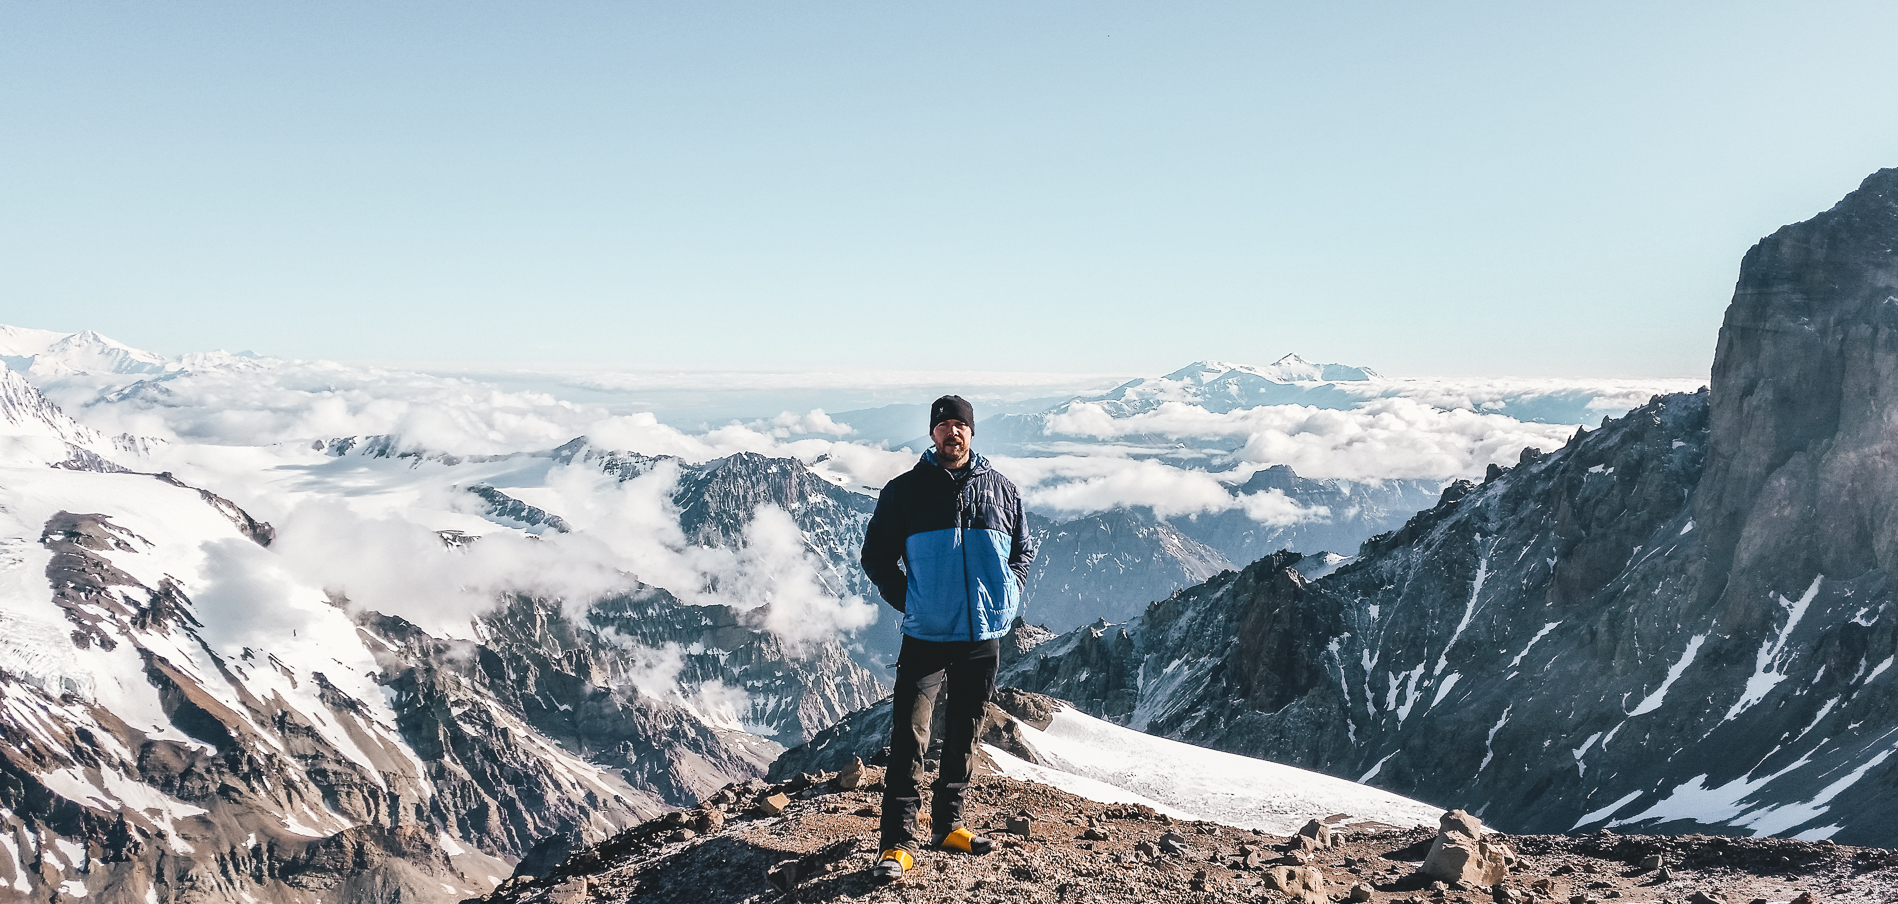 What are the Seven Summits - Aconcagua